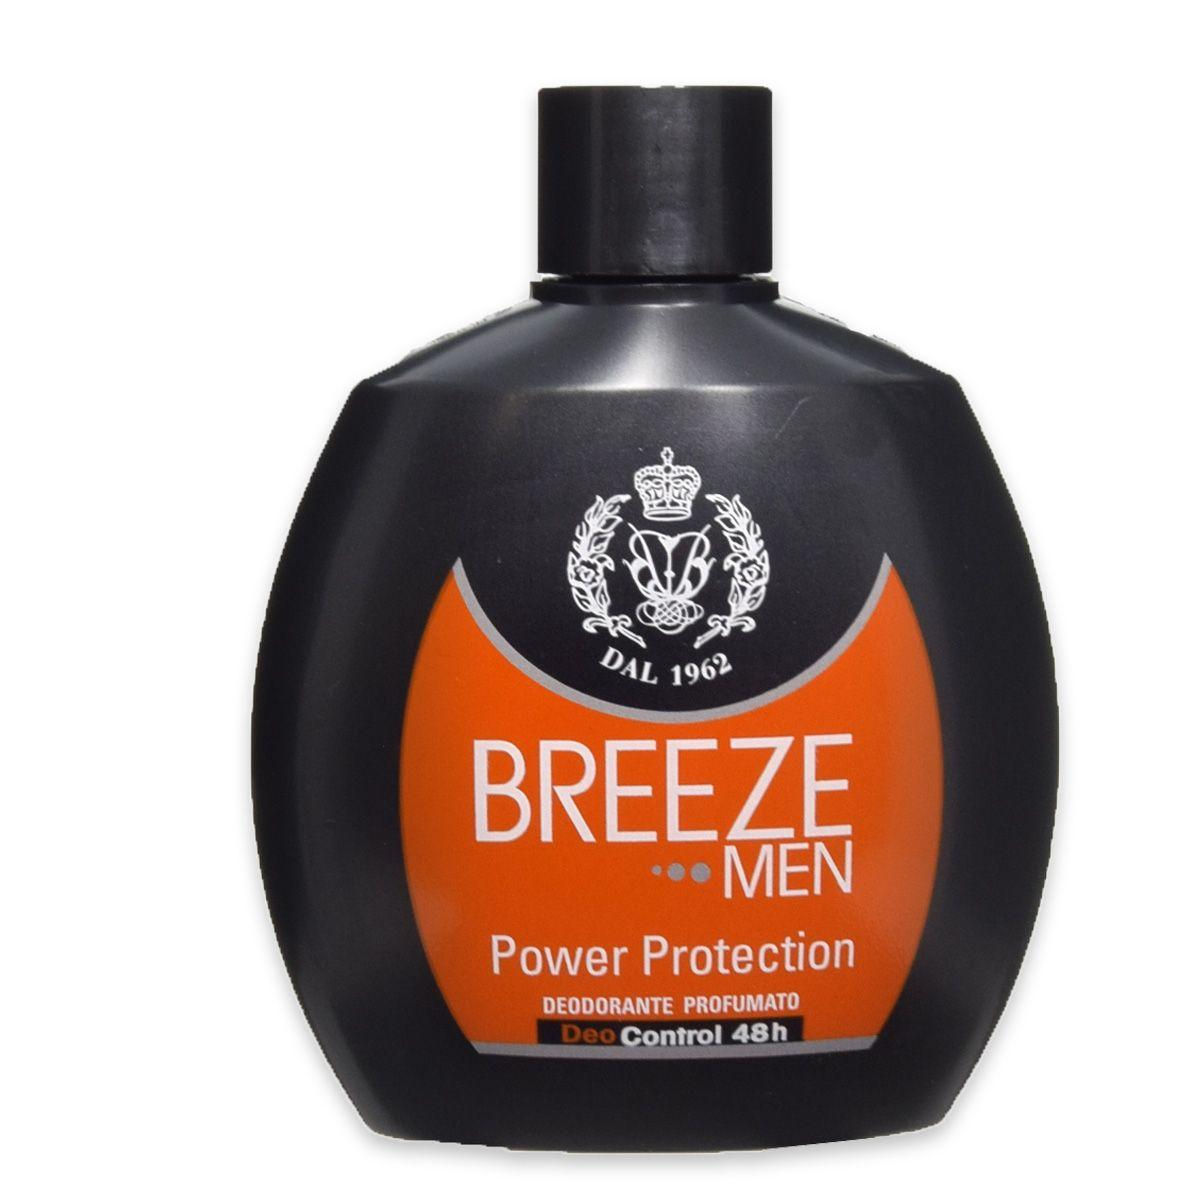 Breeze deo squeeze 100 ml power protection